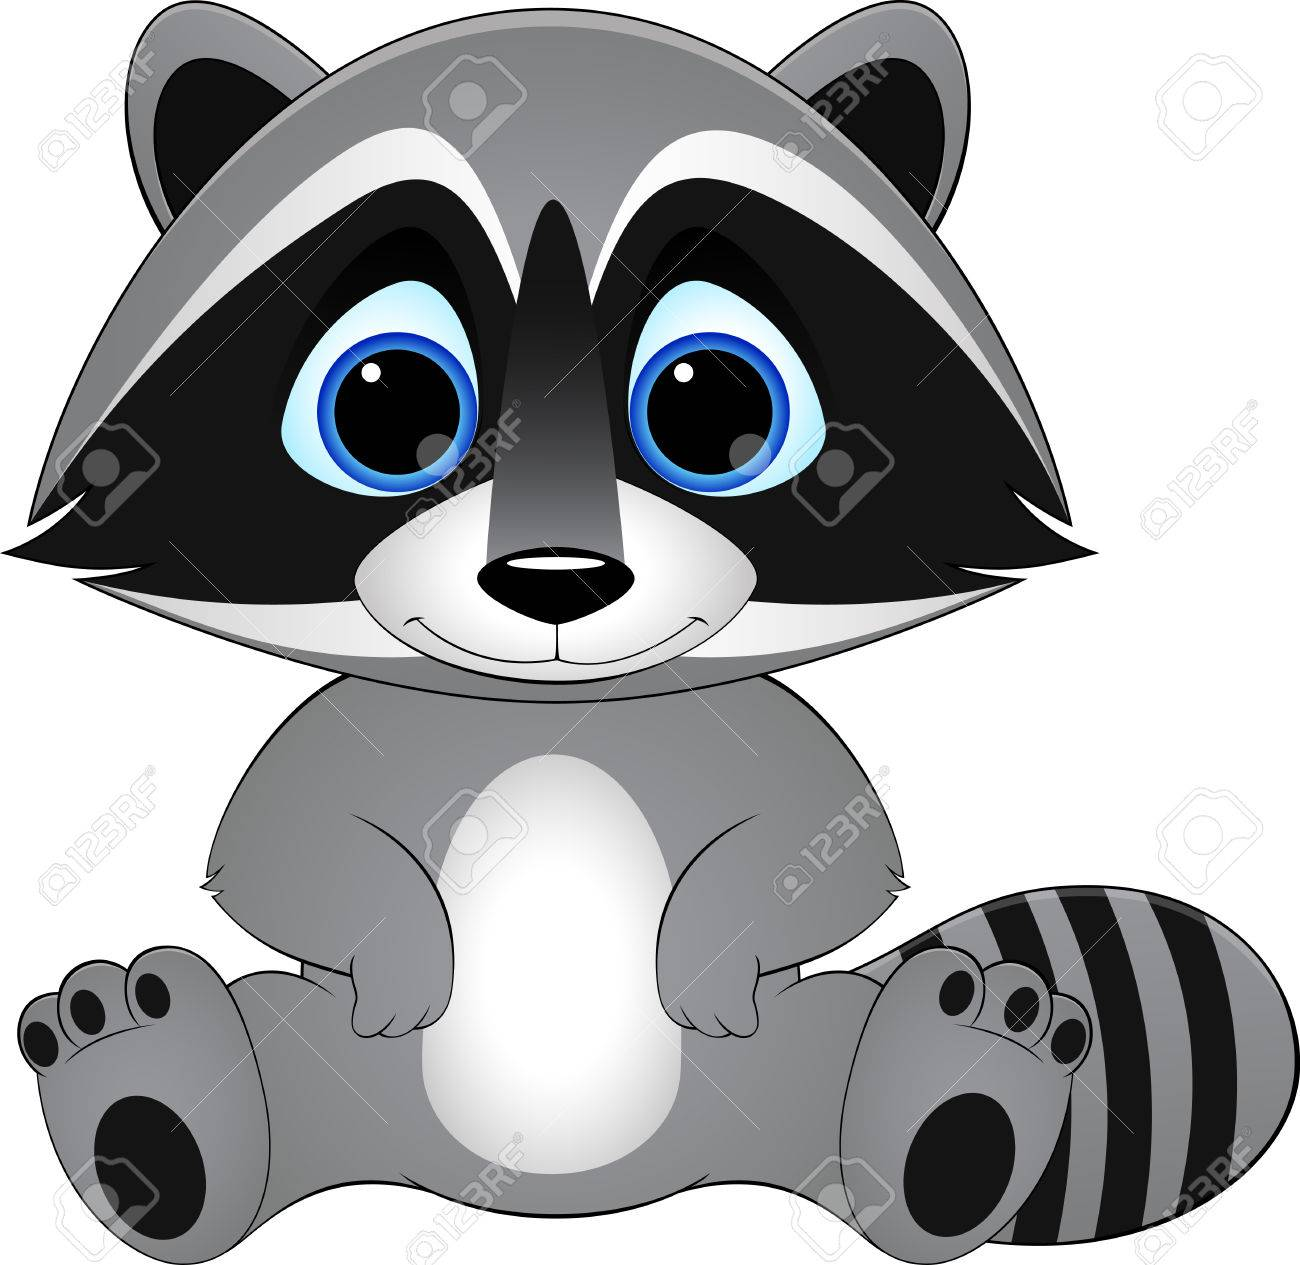 cute raccoon on white background, illustration.